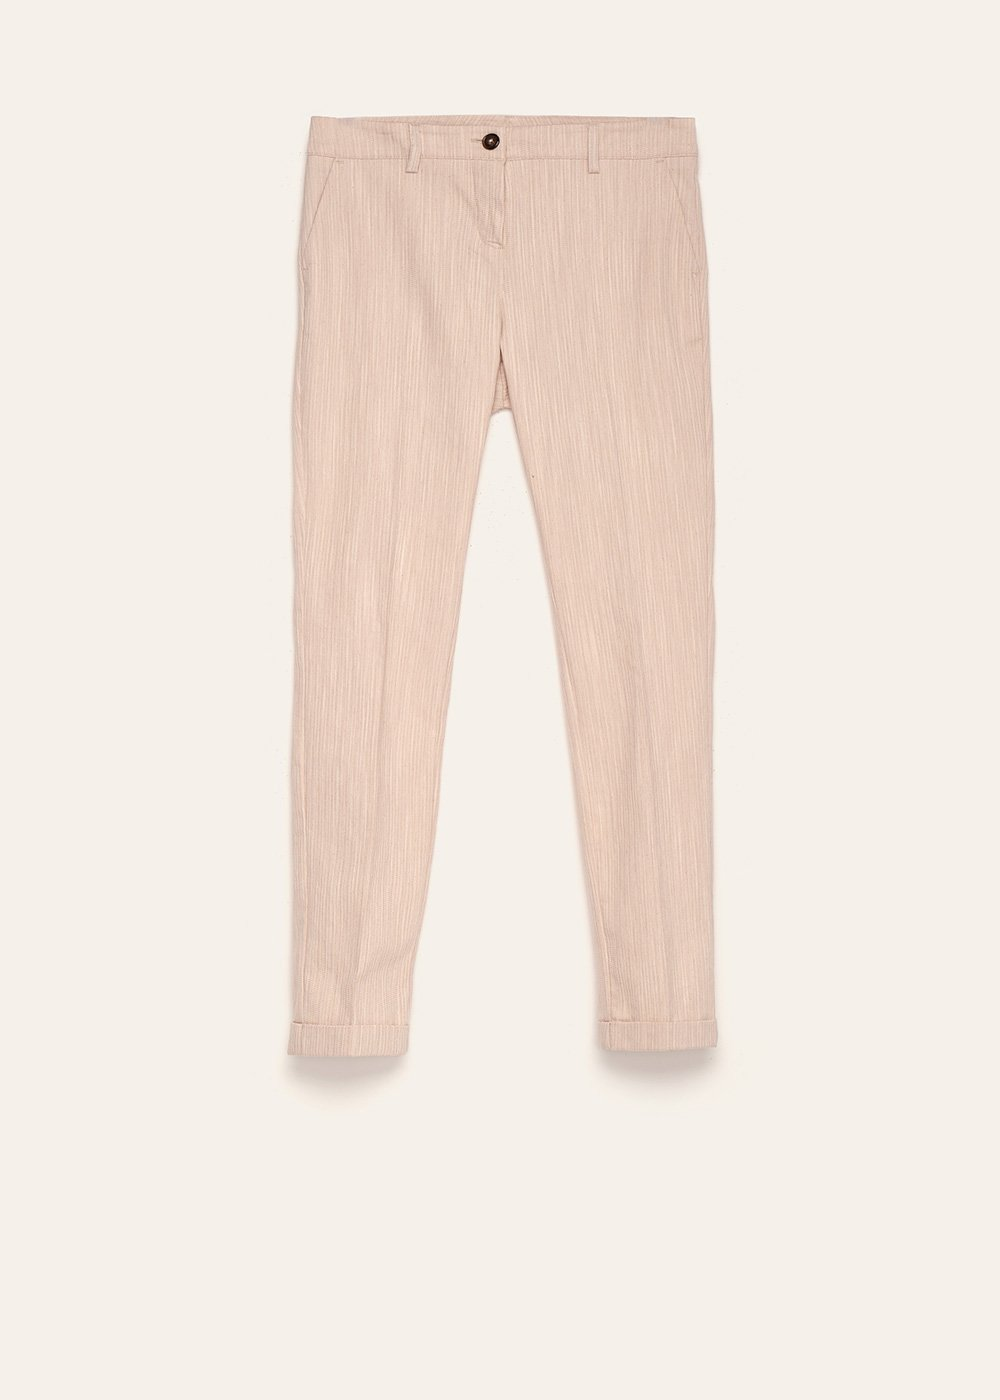 Bella cotton trousers with striped effect - Light Beige - Woman